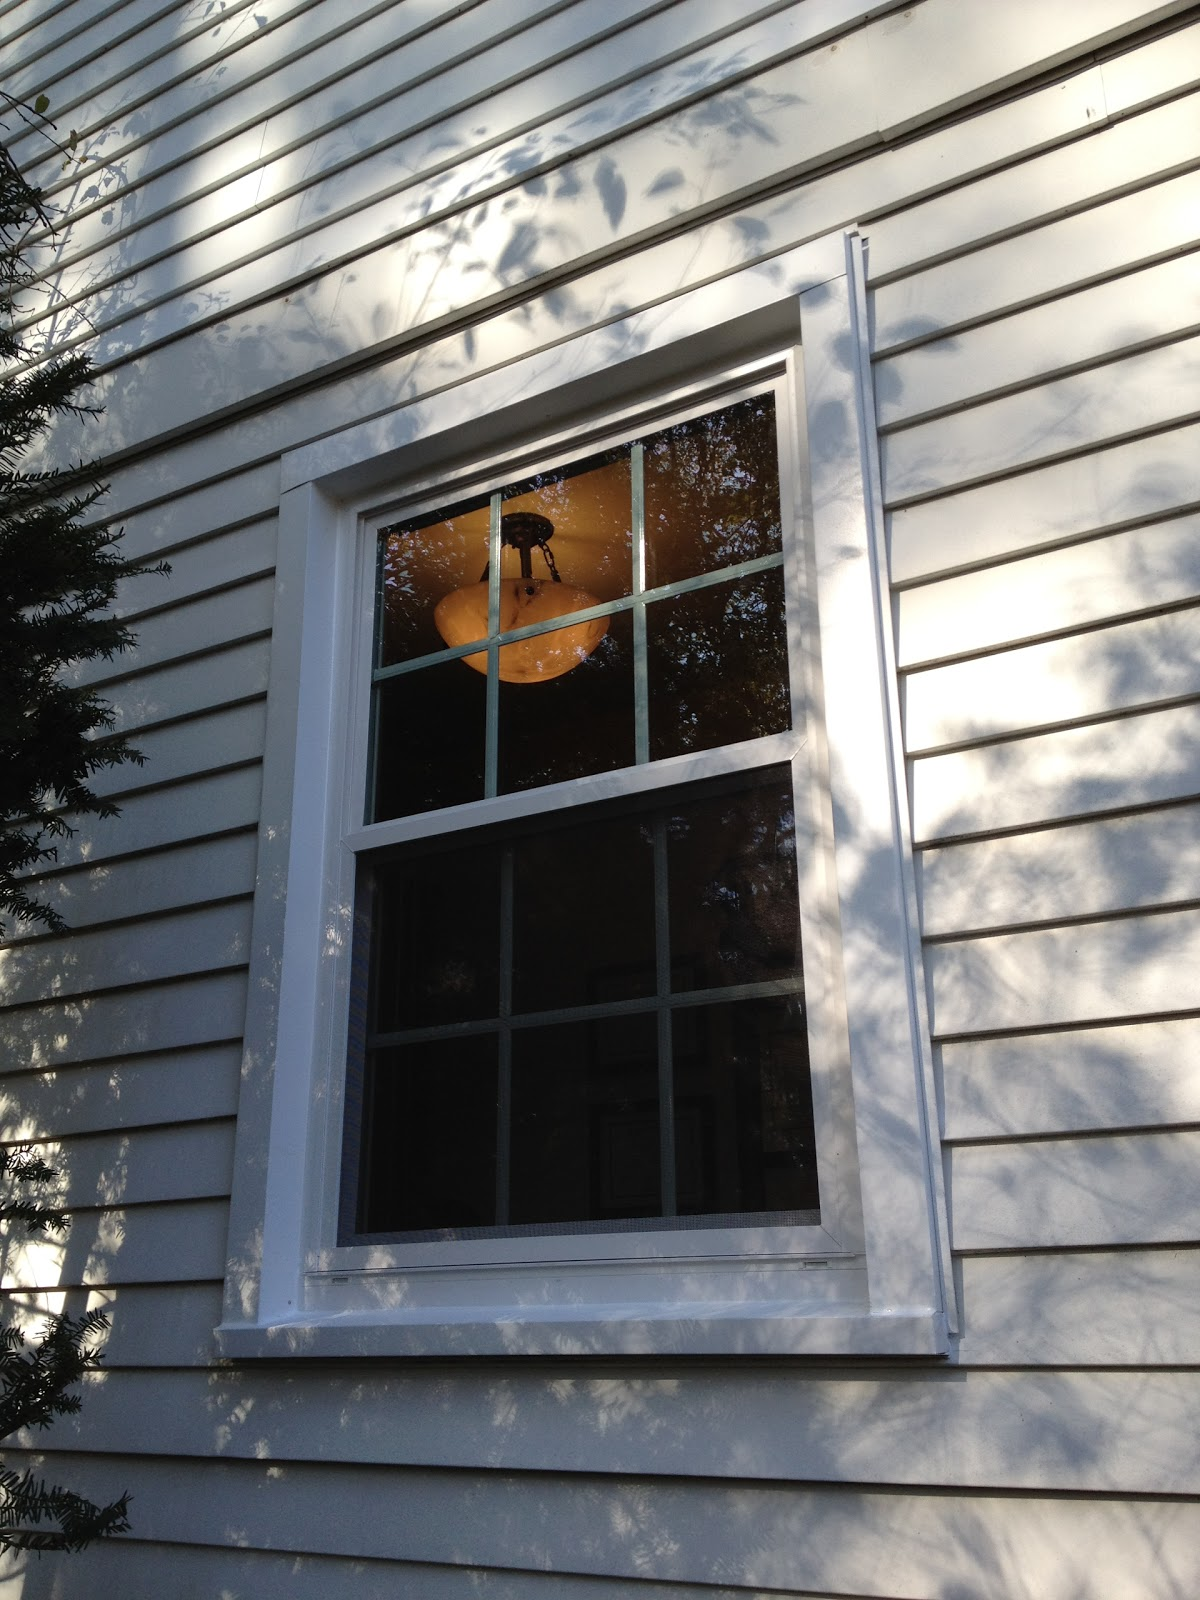 Window panes how much to replace a double pane window for Top 5 replacement windows